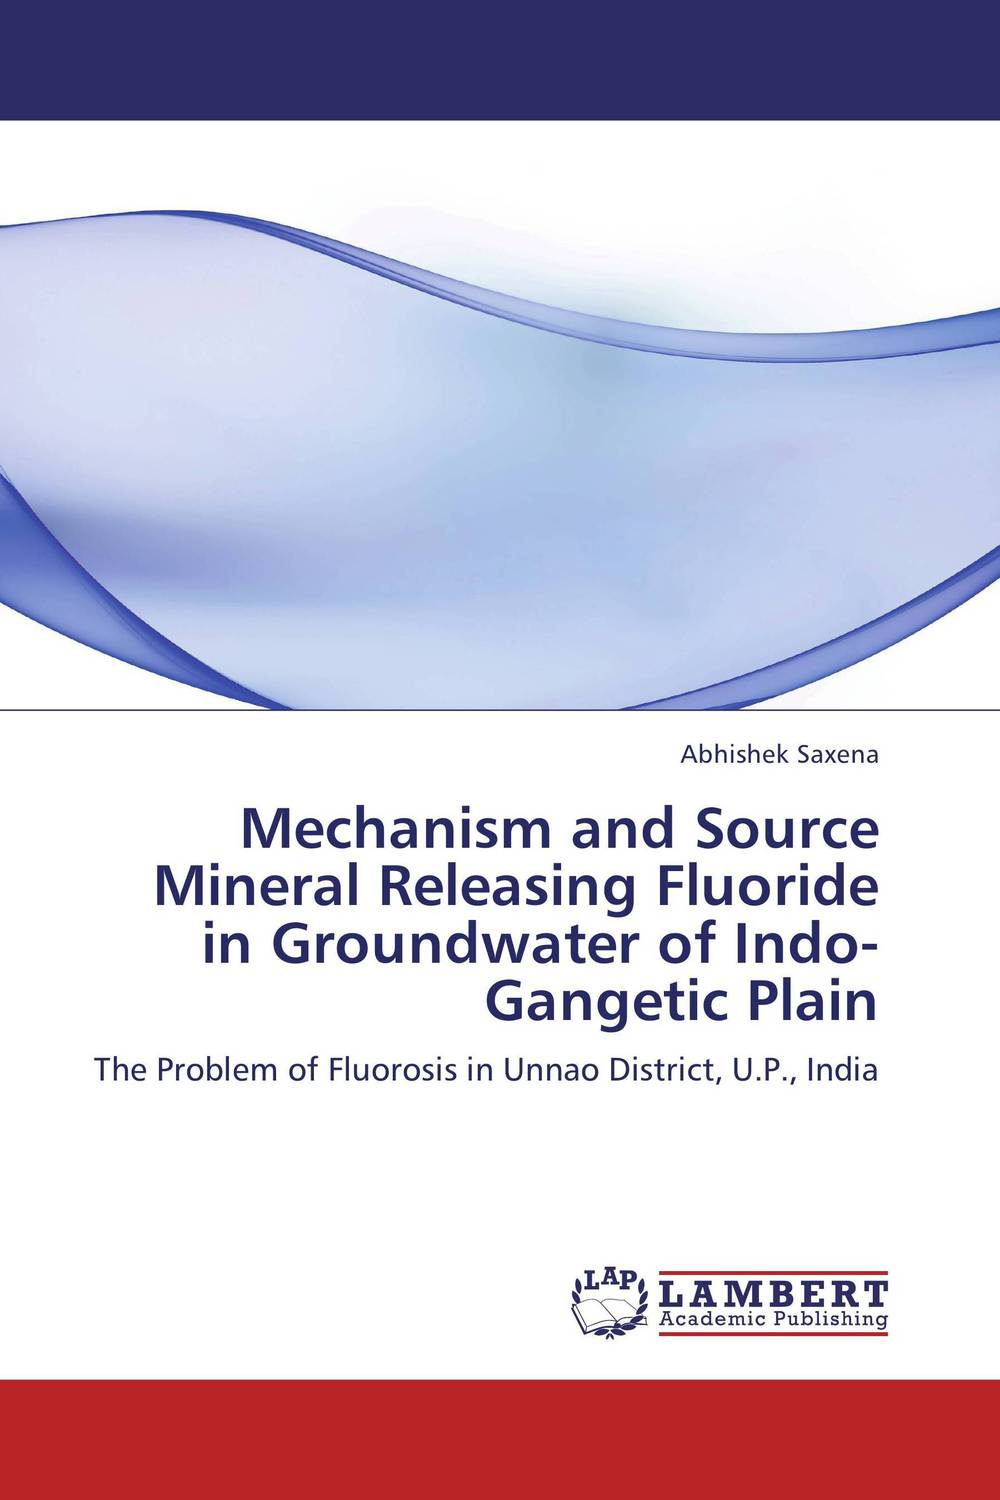 Mechanism and Source Mineral Releasing Fluoride in Groundwater of Indo-Gangetic Plain fluoride rechargeability